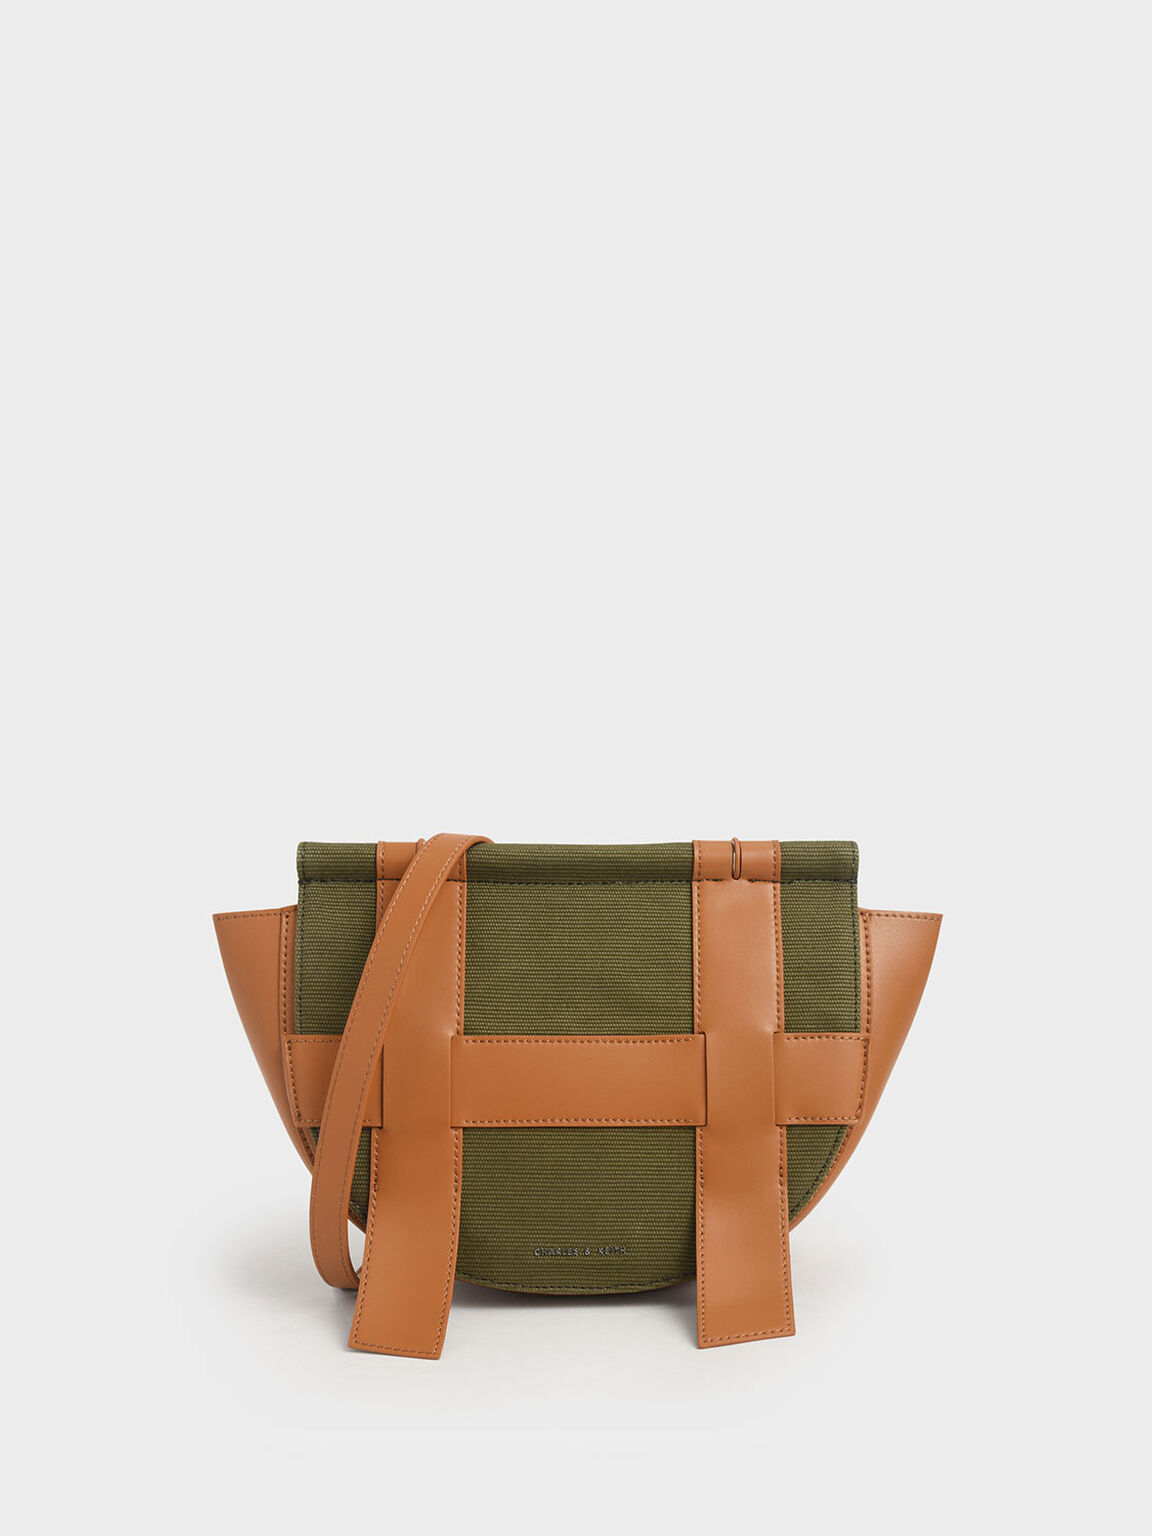 Caged Canvas Crossbody Bag, Olive, hi-res